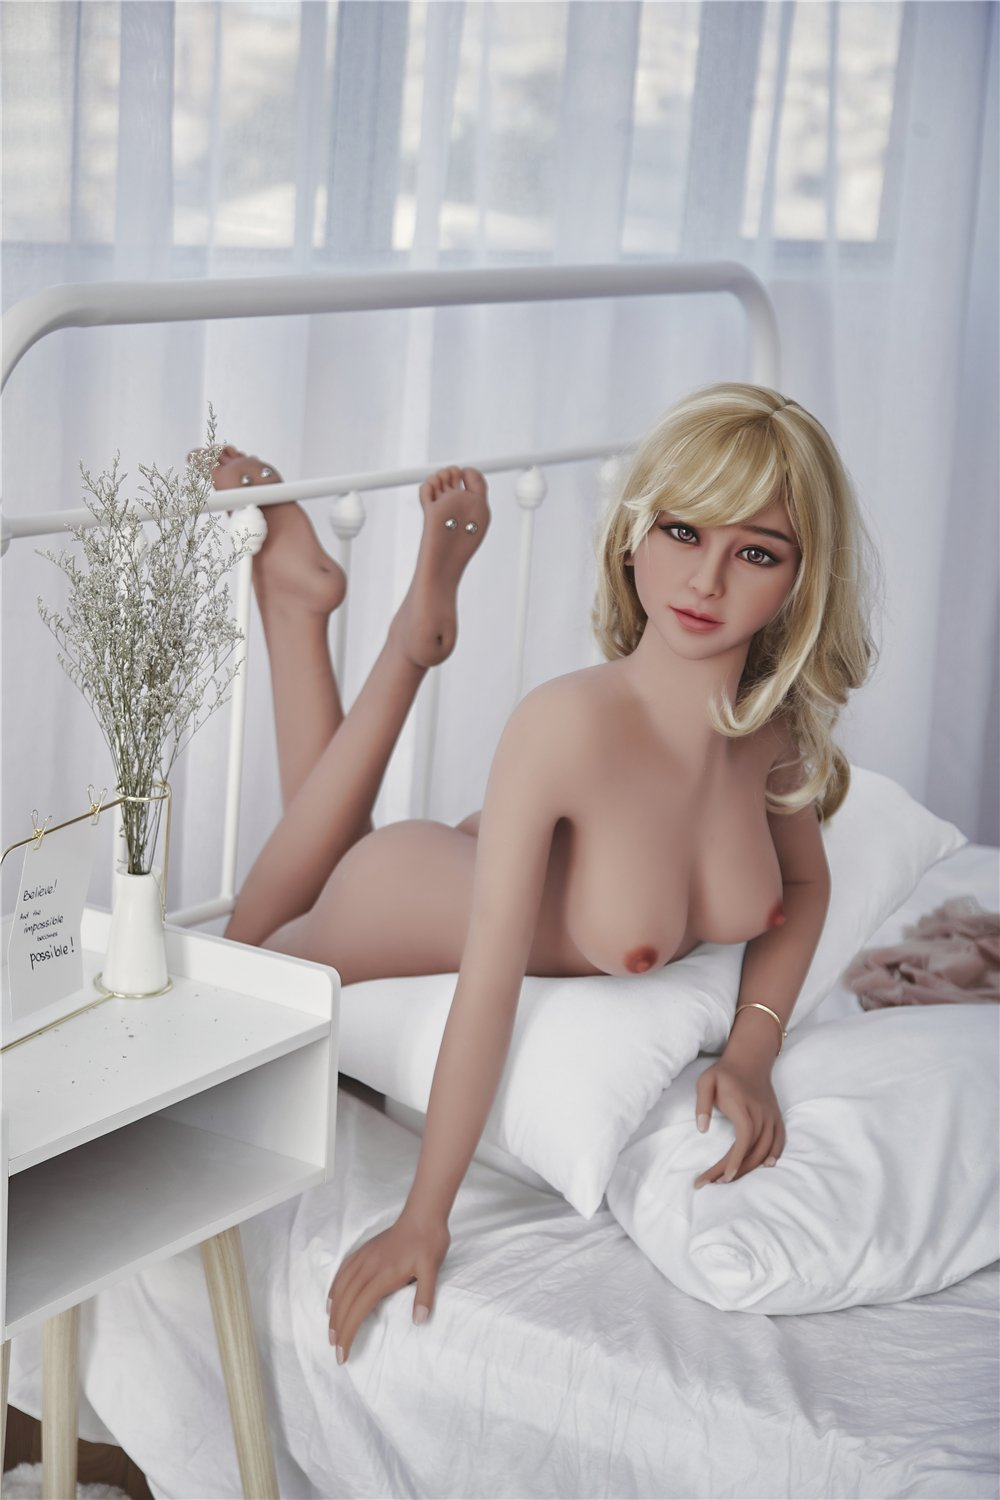 keala 155cm blonde medium tits athletic best flat chested tpe sex doll(6)